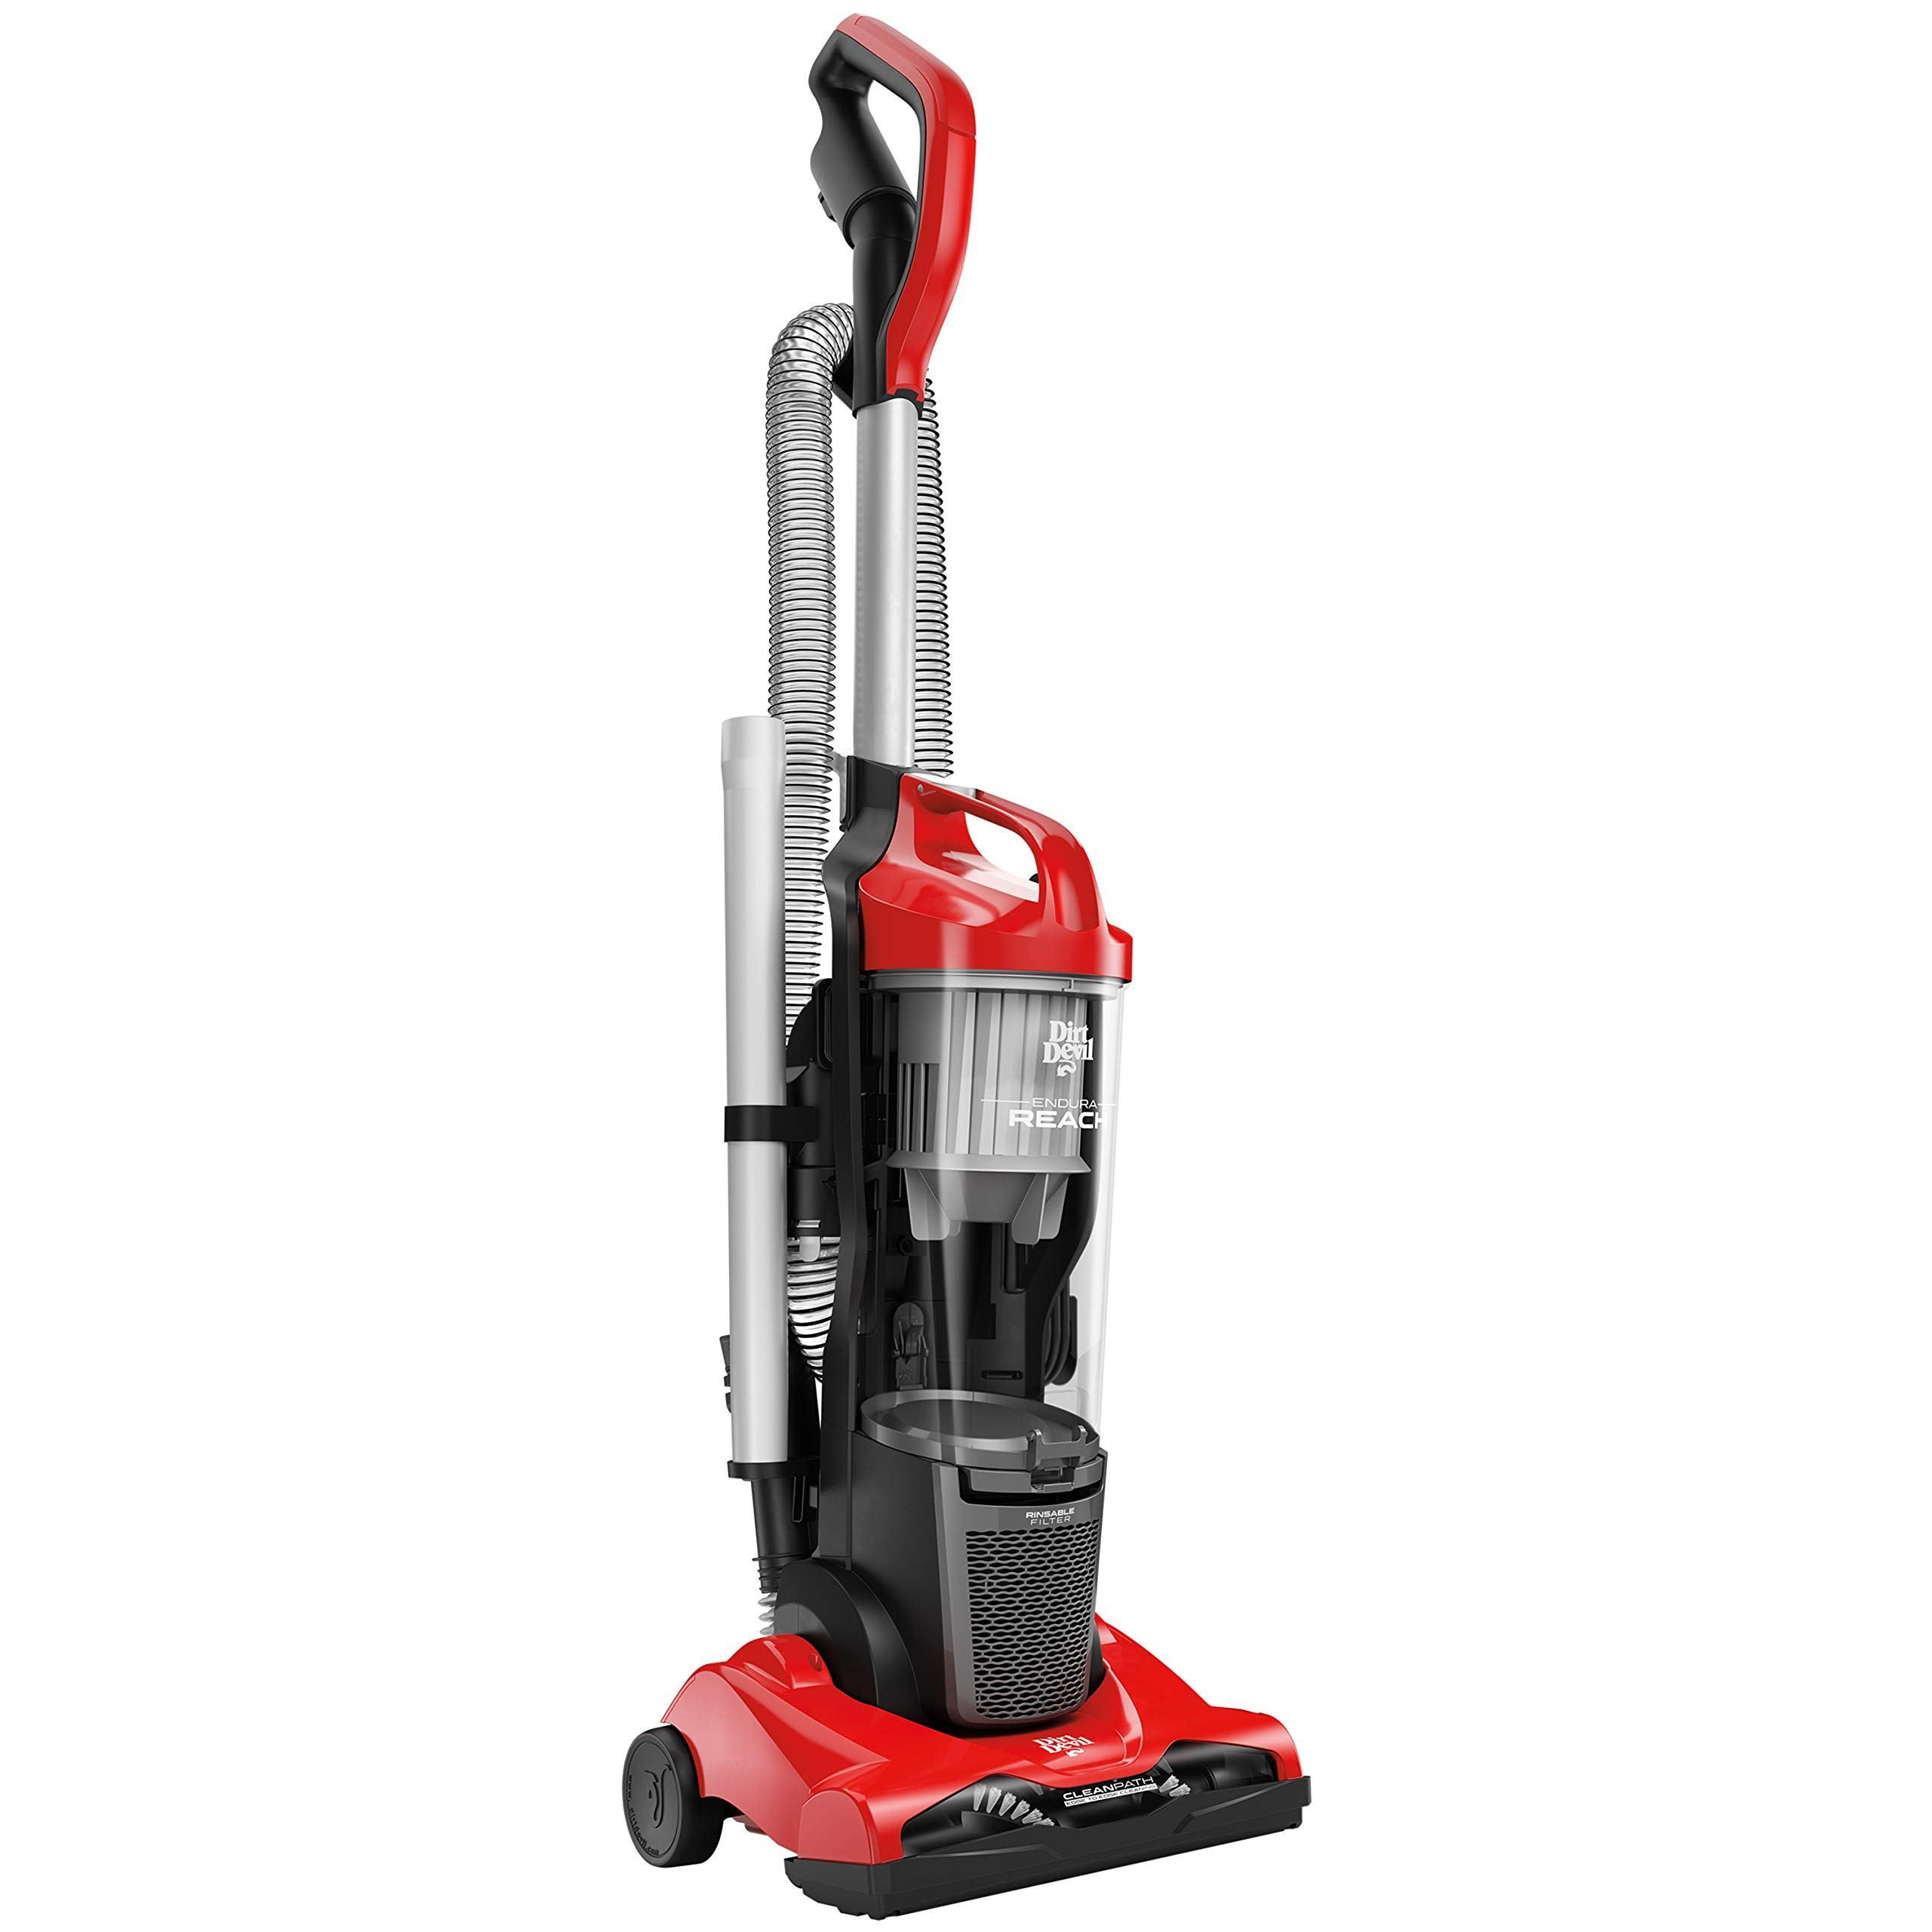 Boughtagain Awesome Goods You Bought It Again Bagless Vacuum Cleaner Upright Vacuums Bagless Vacuum